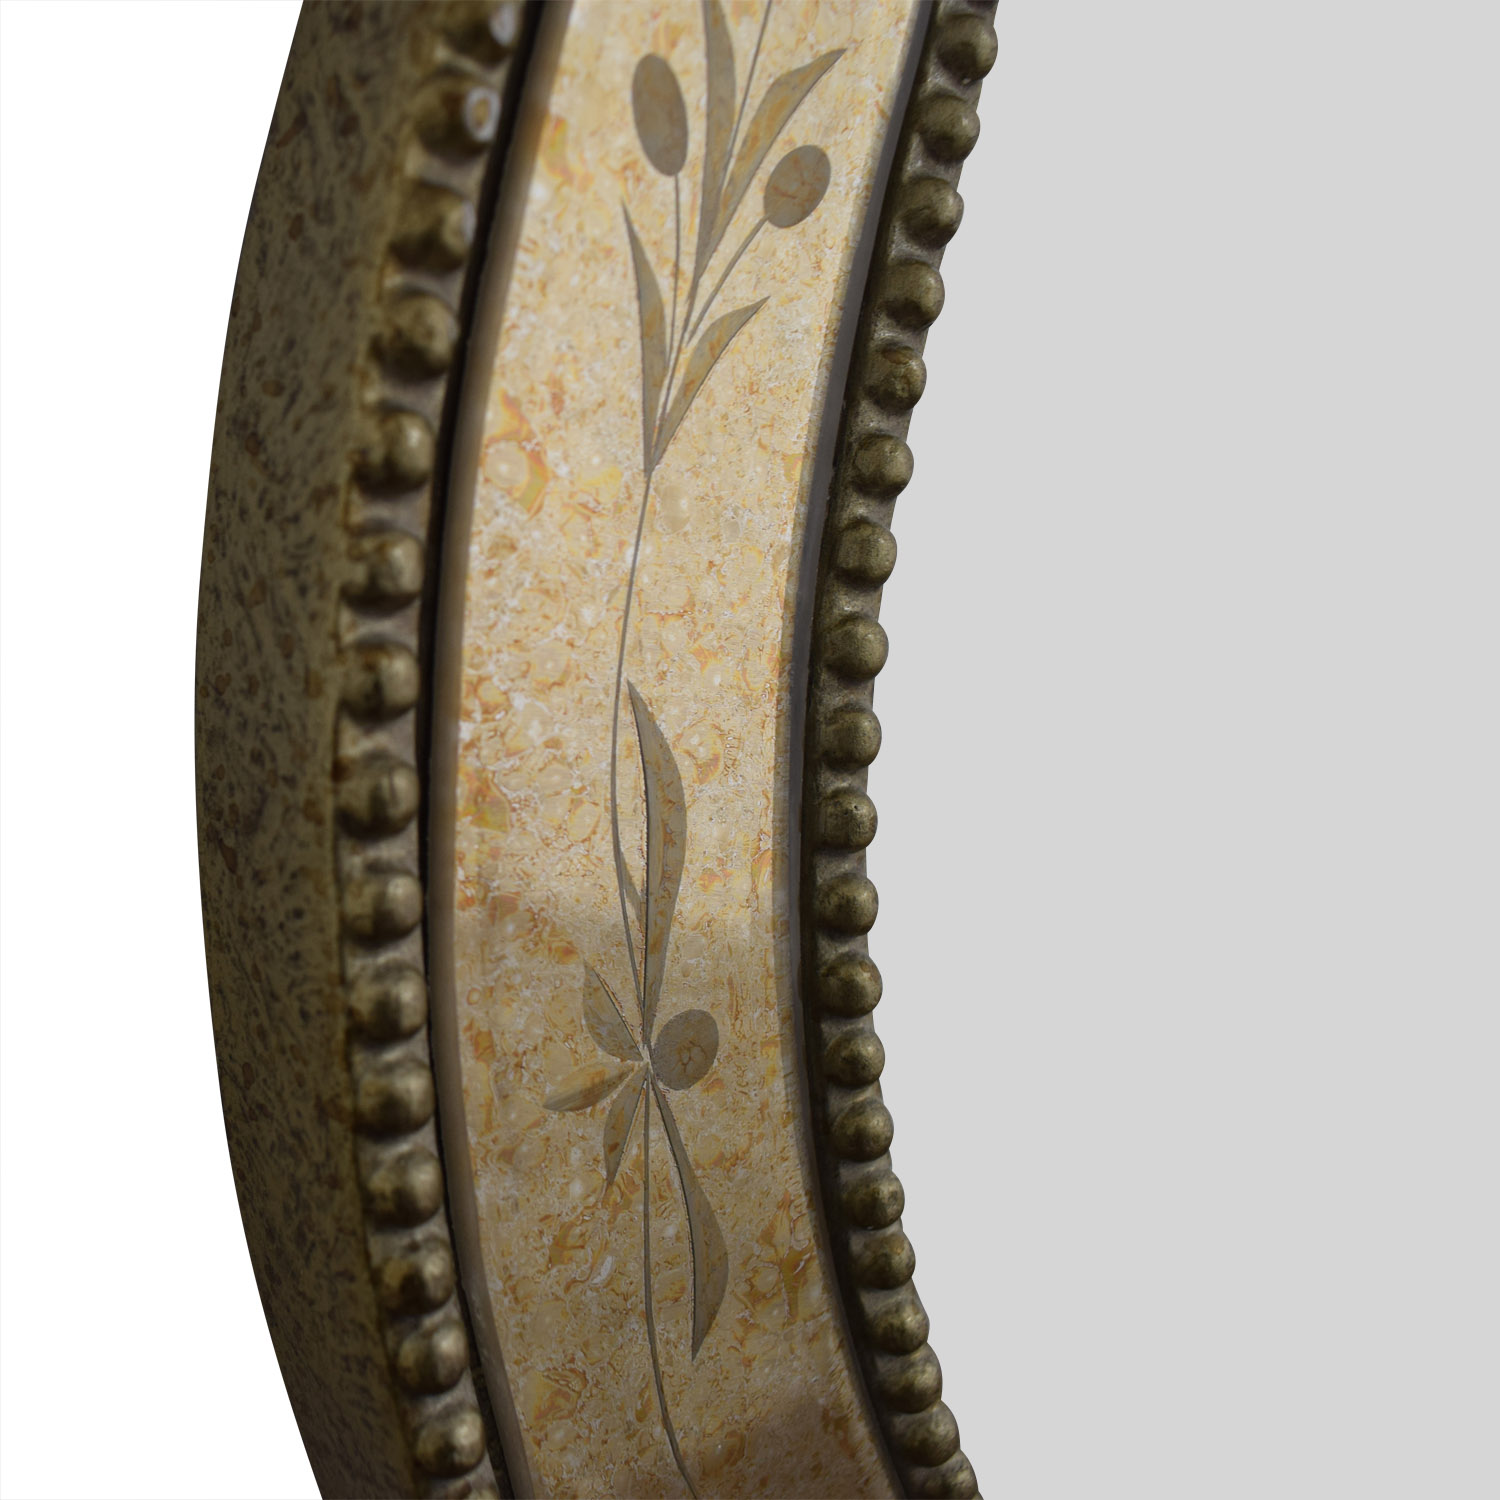 Uttermost Uttermost Distressed Gold Framed Wall Mirror discount